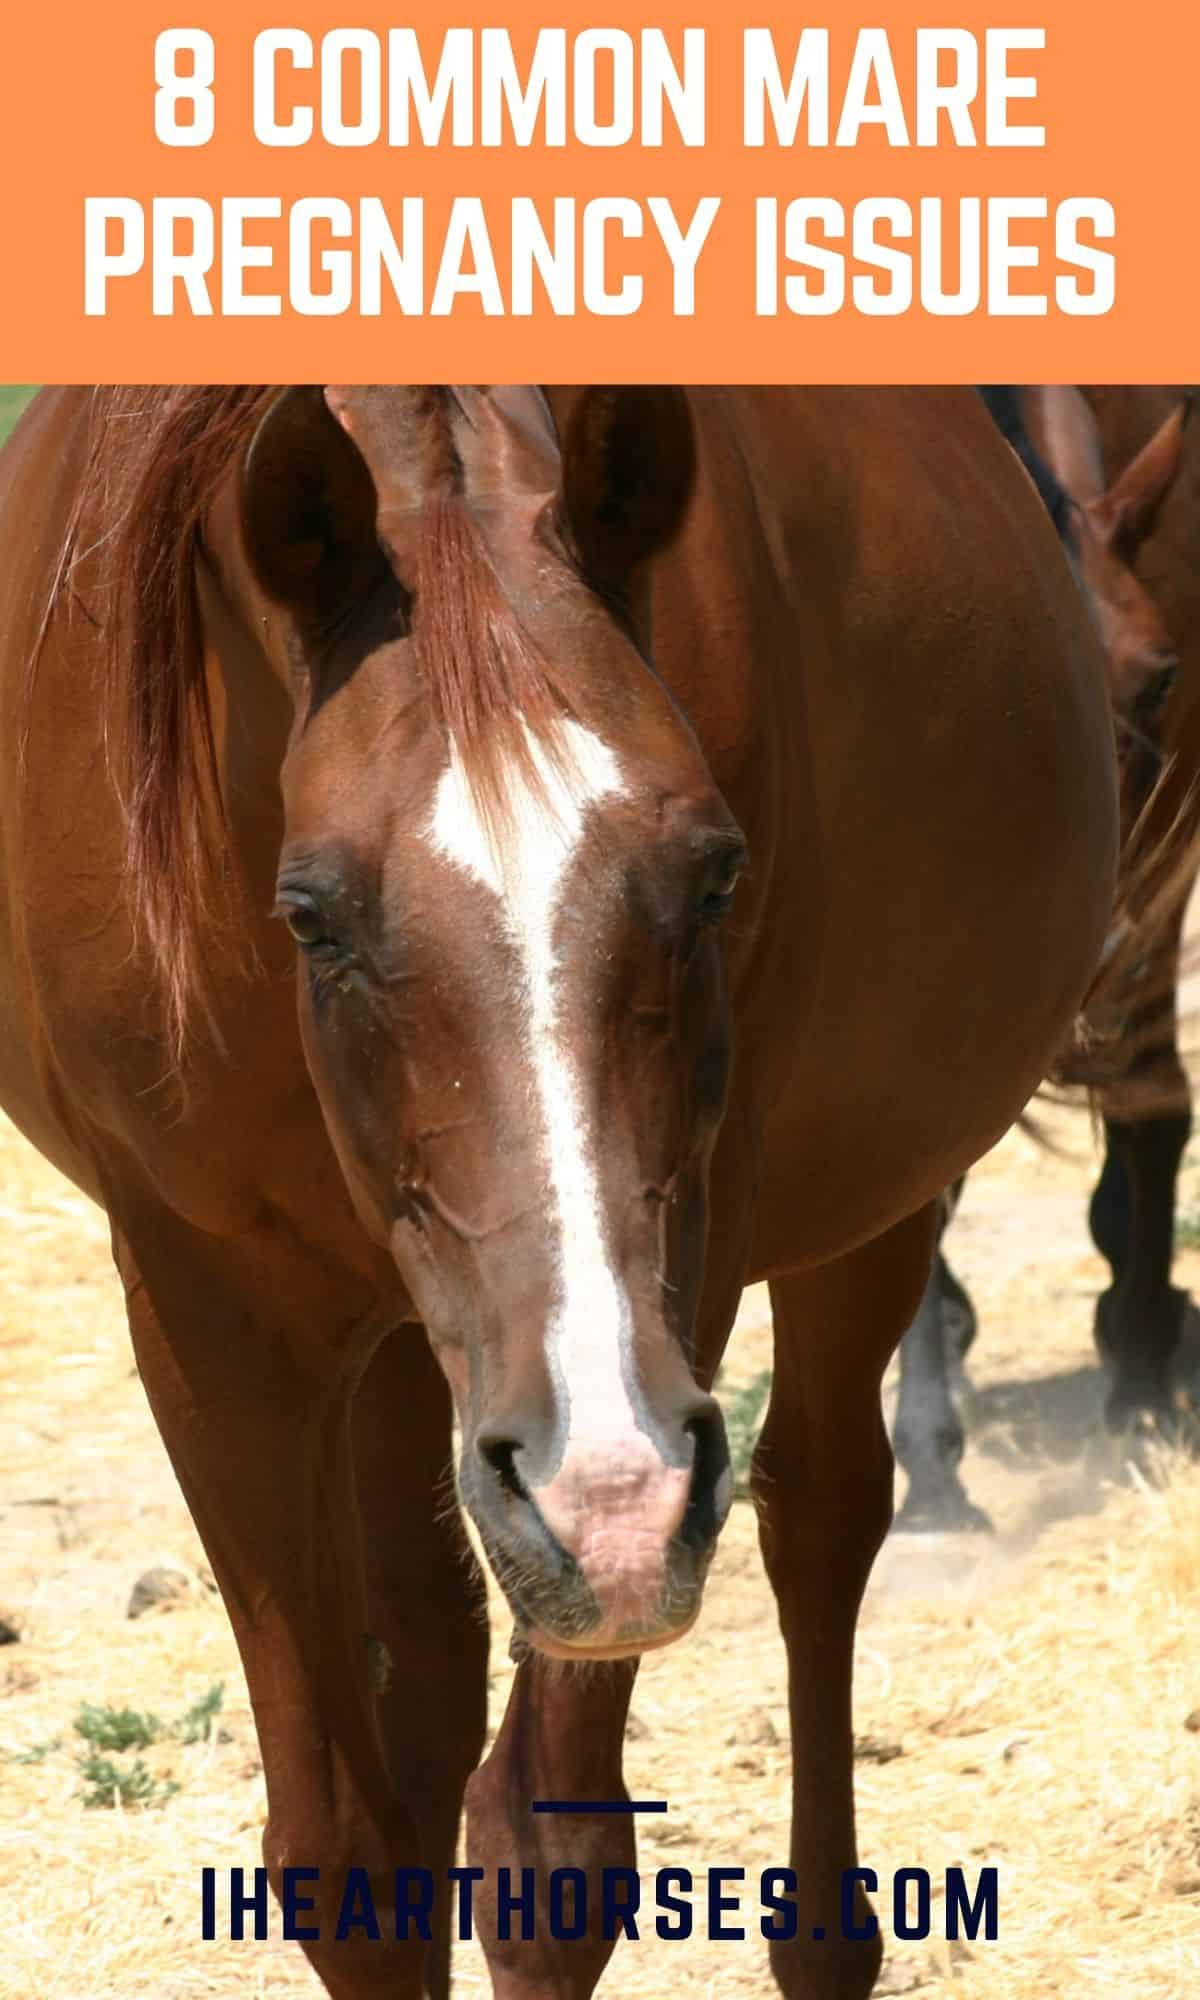 Brown pregnant mare with orange banner on top of image that says 8 common mare pregnancy issues